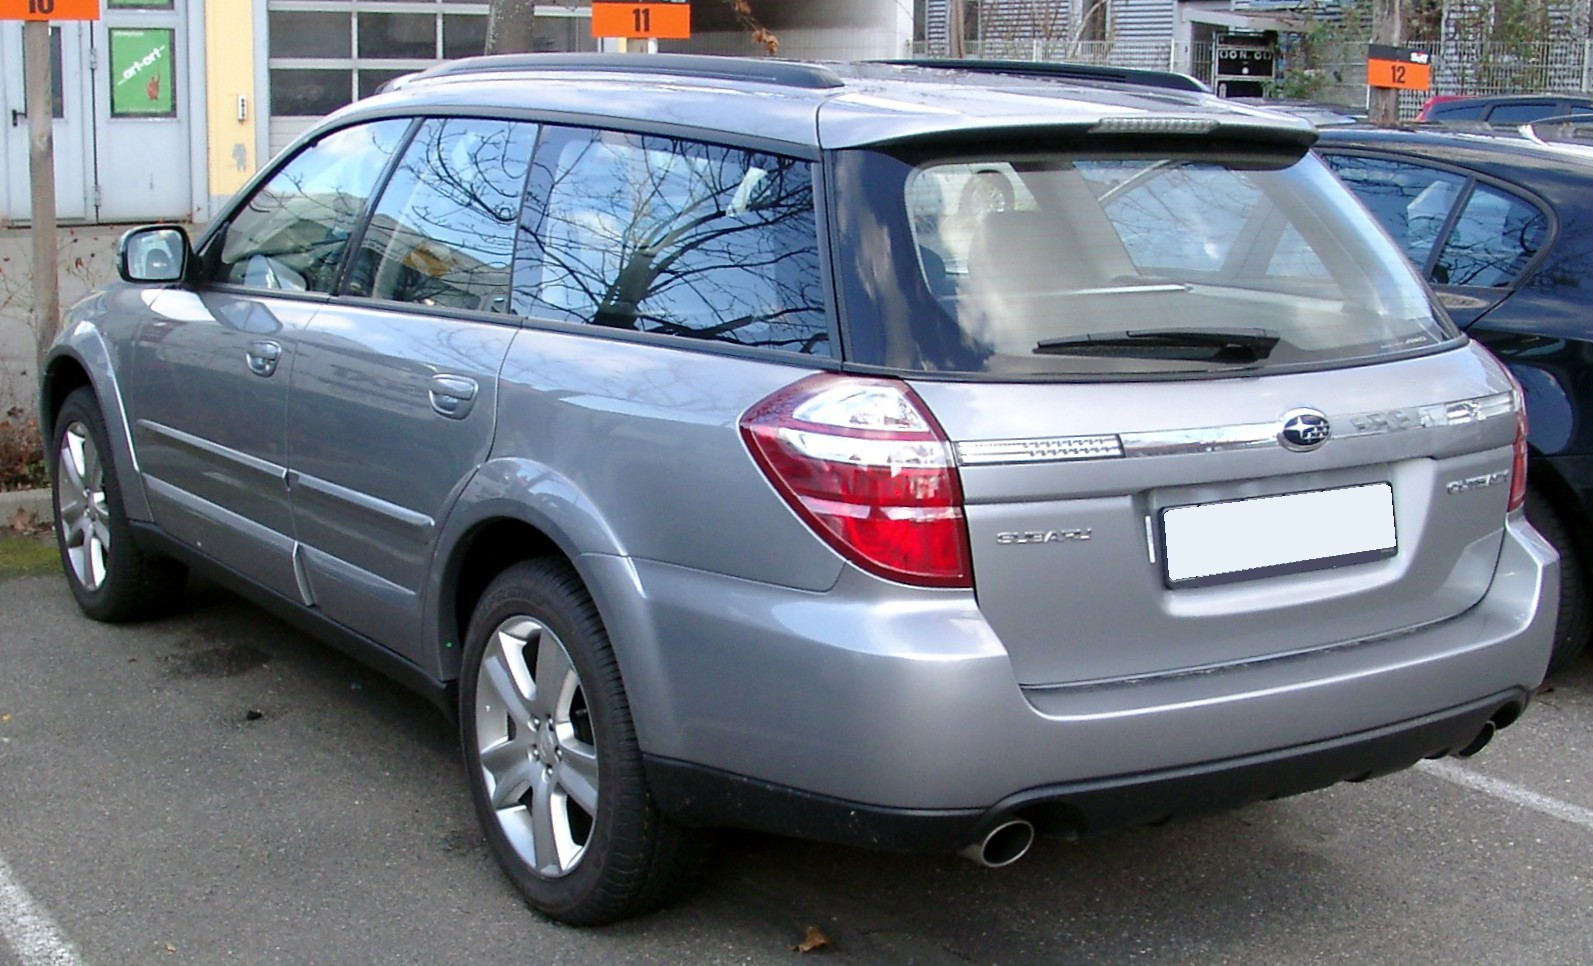 Subaru Outback 2019 >> File:Subaru Outback rear 20080202.jpg - Wikimedia Commons